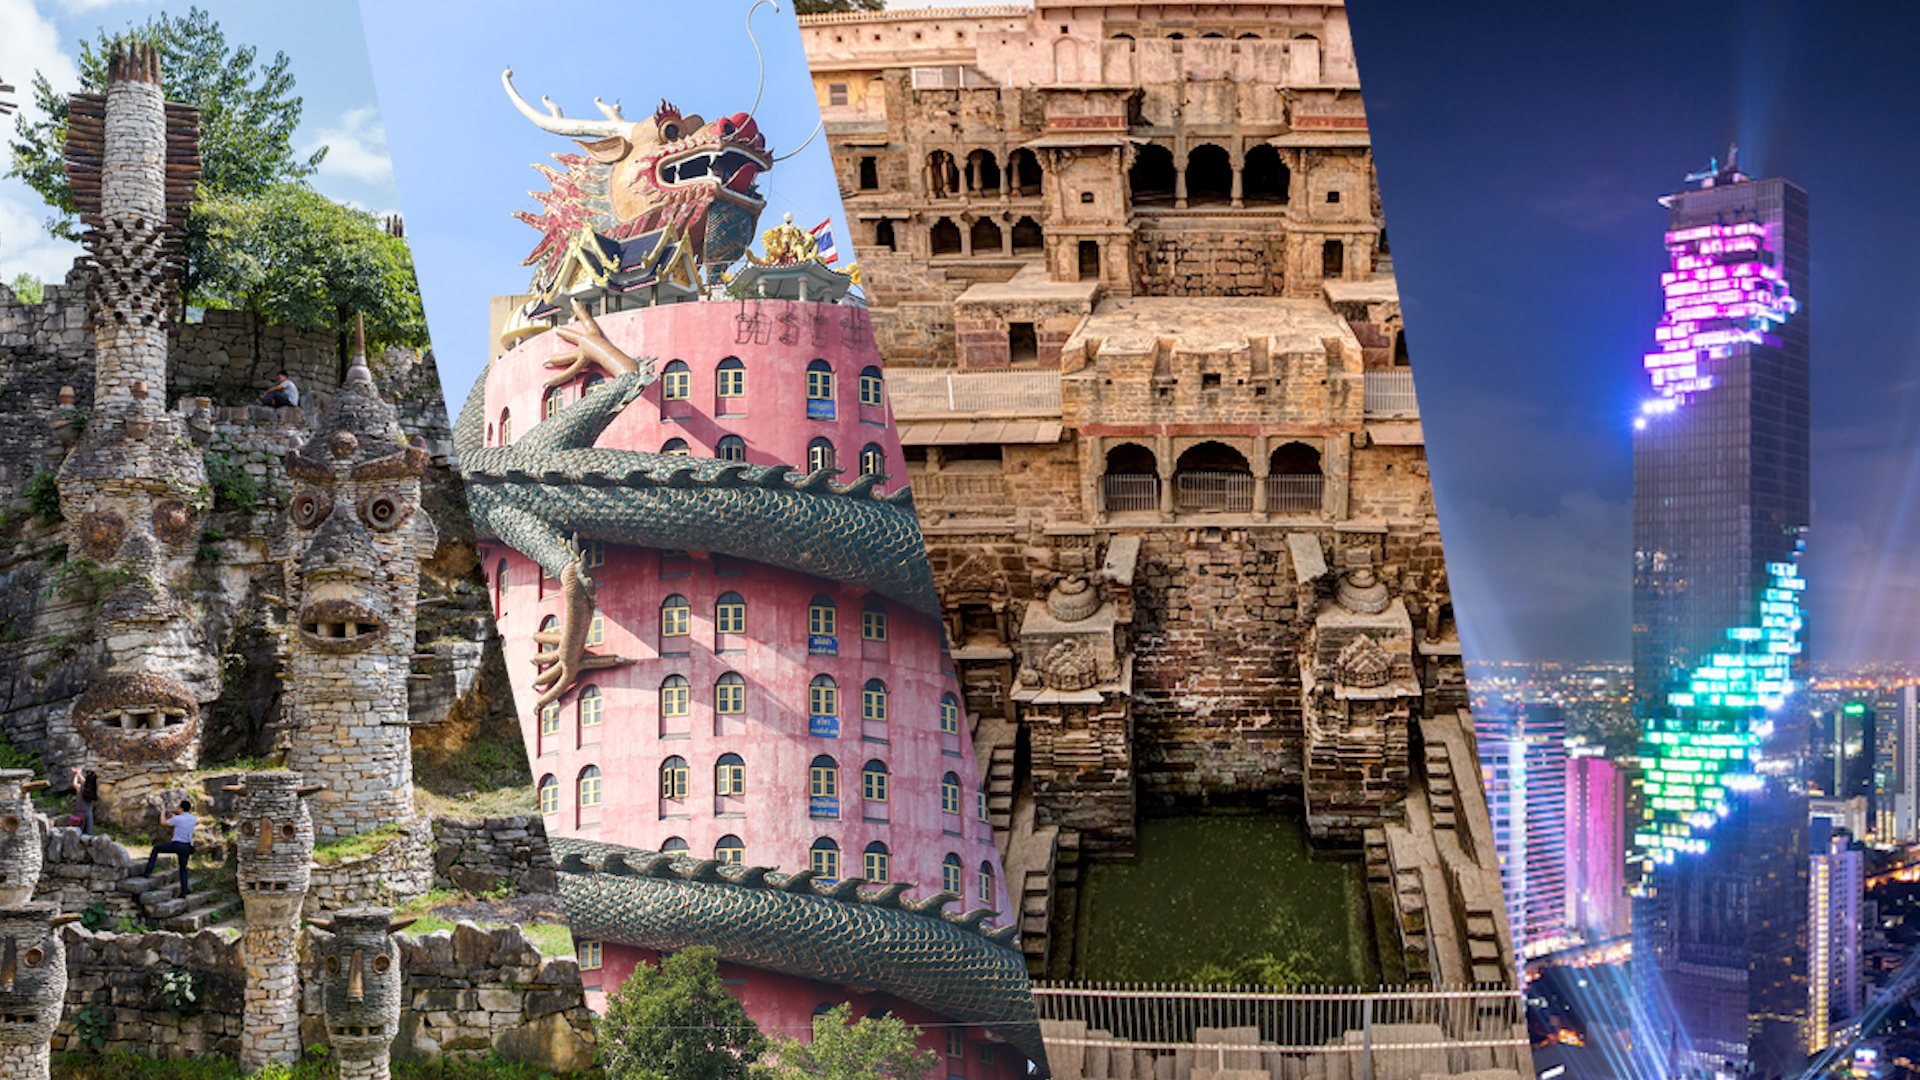 places strangest visit strange travel weird ripley century tower khlong mai beaten temple path dragon